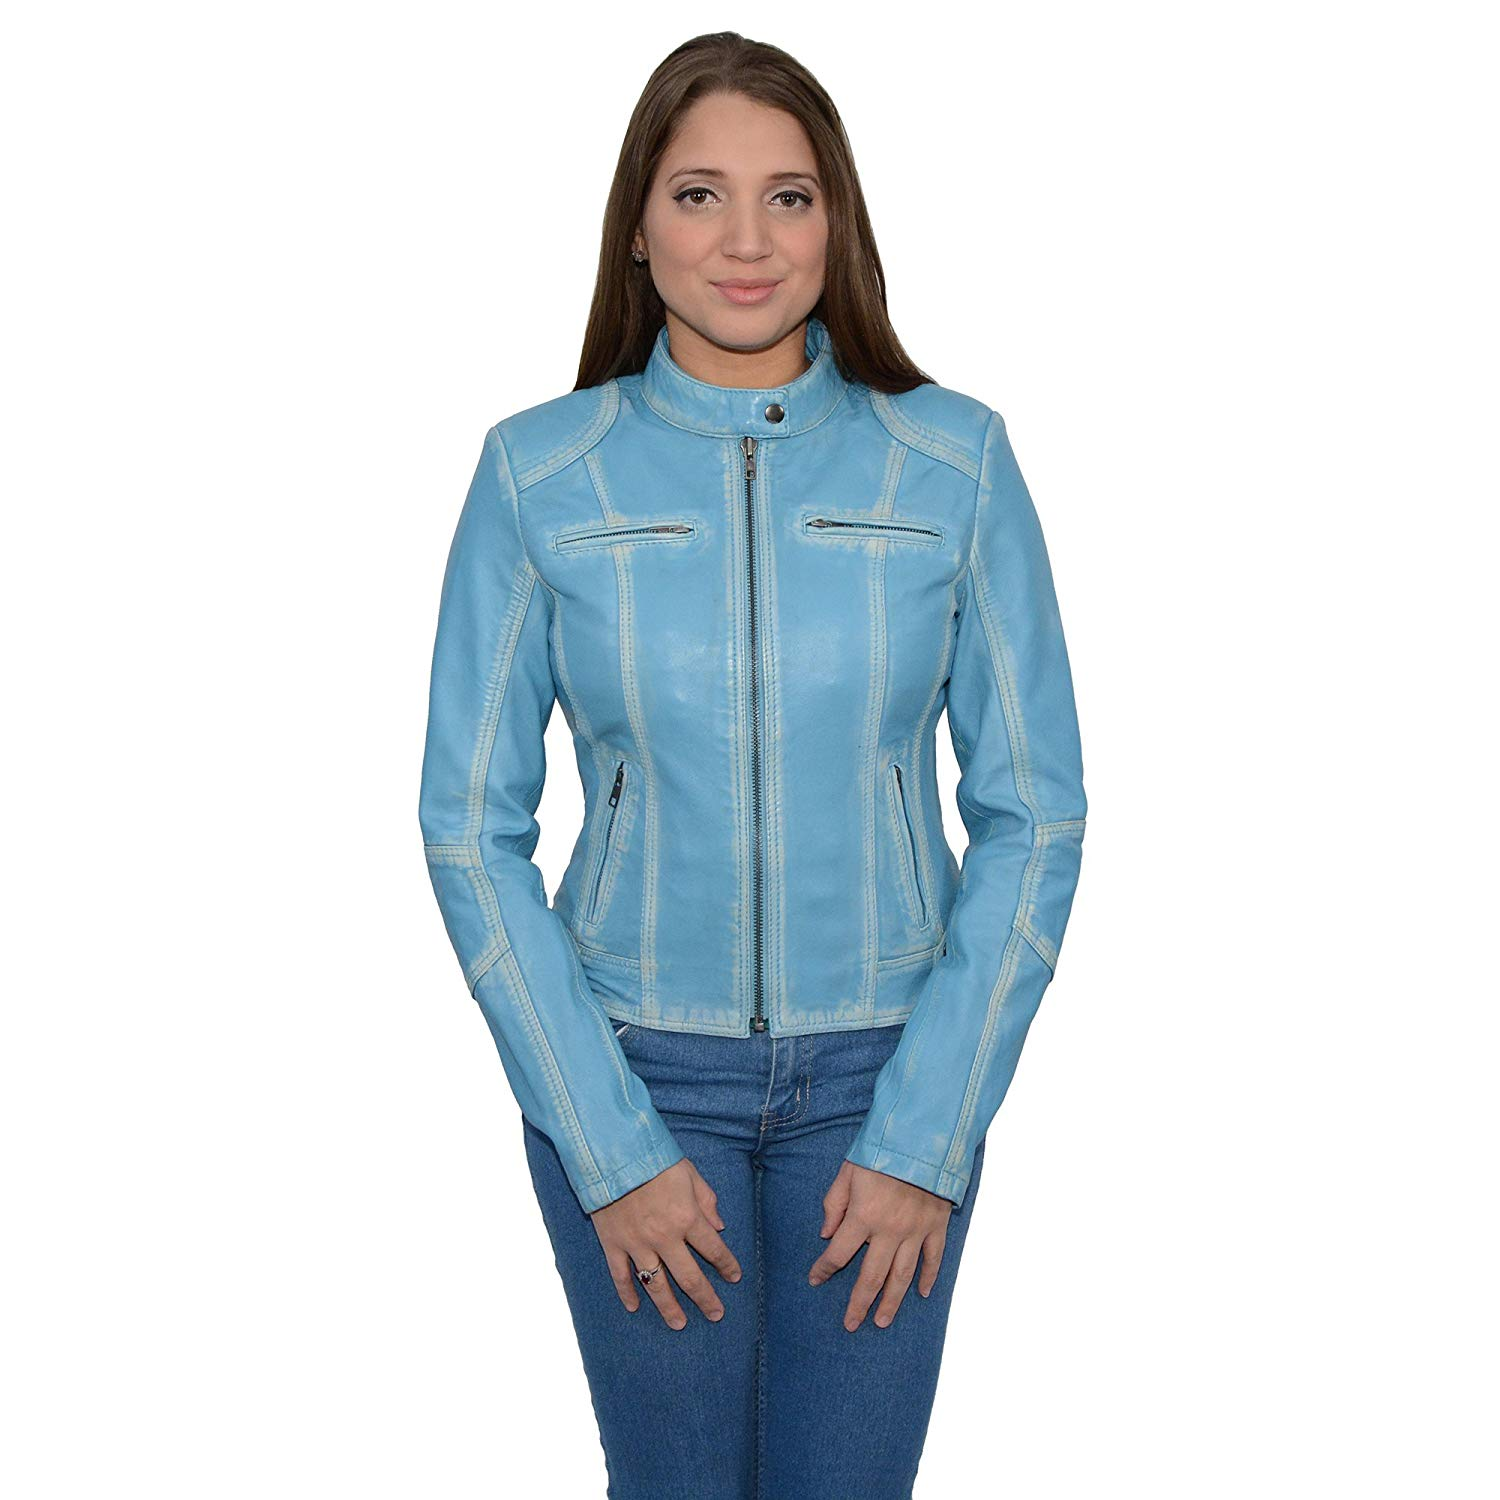 Milwaukee Leather Women's Sheepskin Scuba Style Moto Jacket (Aqua, Large), 1 Pack